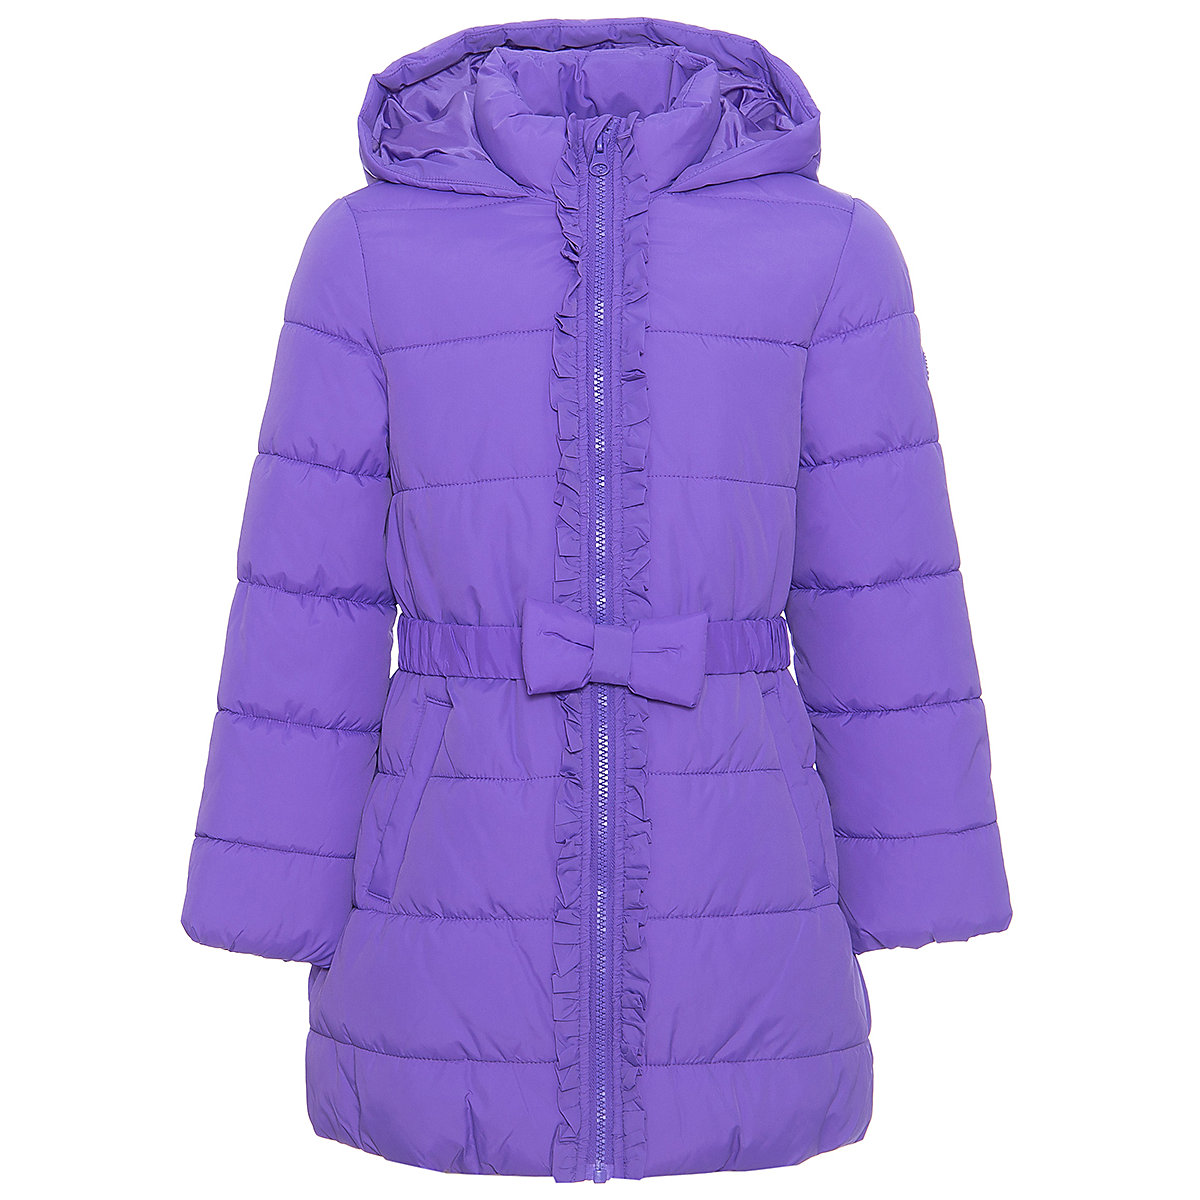 Original Marines Jackets & Coats 9500801 Polyester Girls girl children clothing reima jackets 8665394 for girls polyester winter fur clothes girl